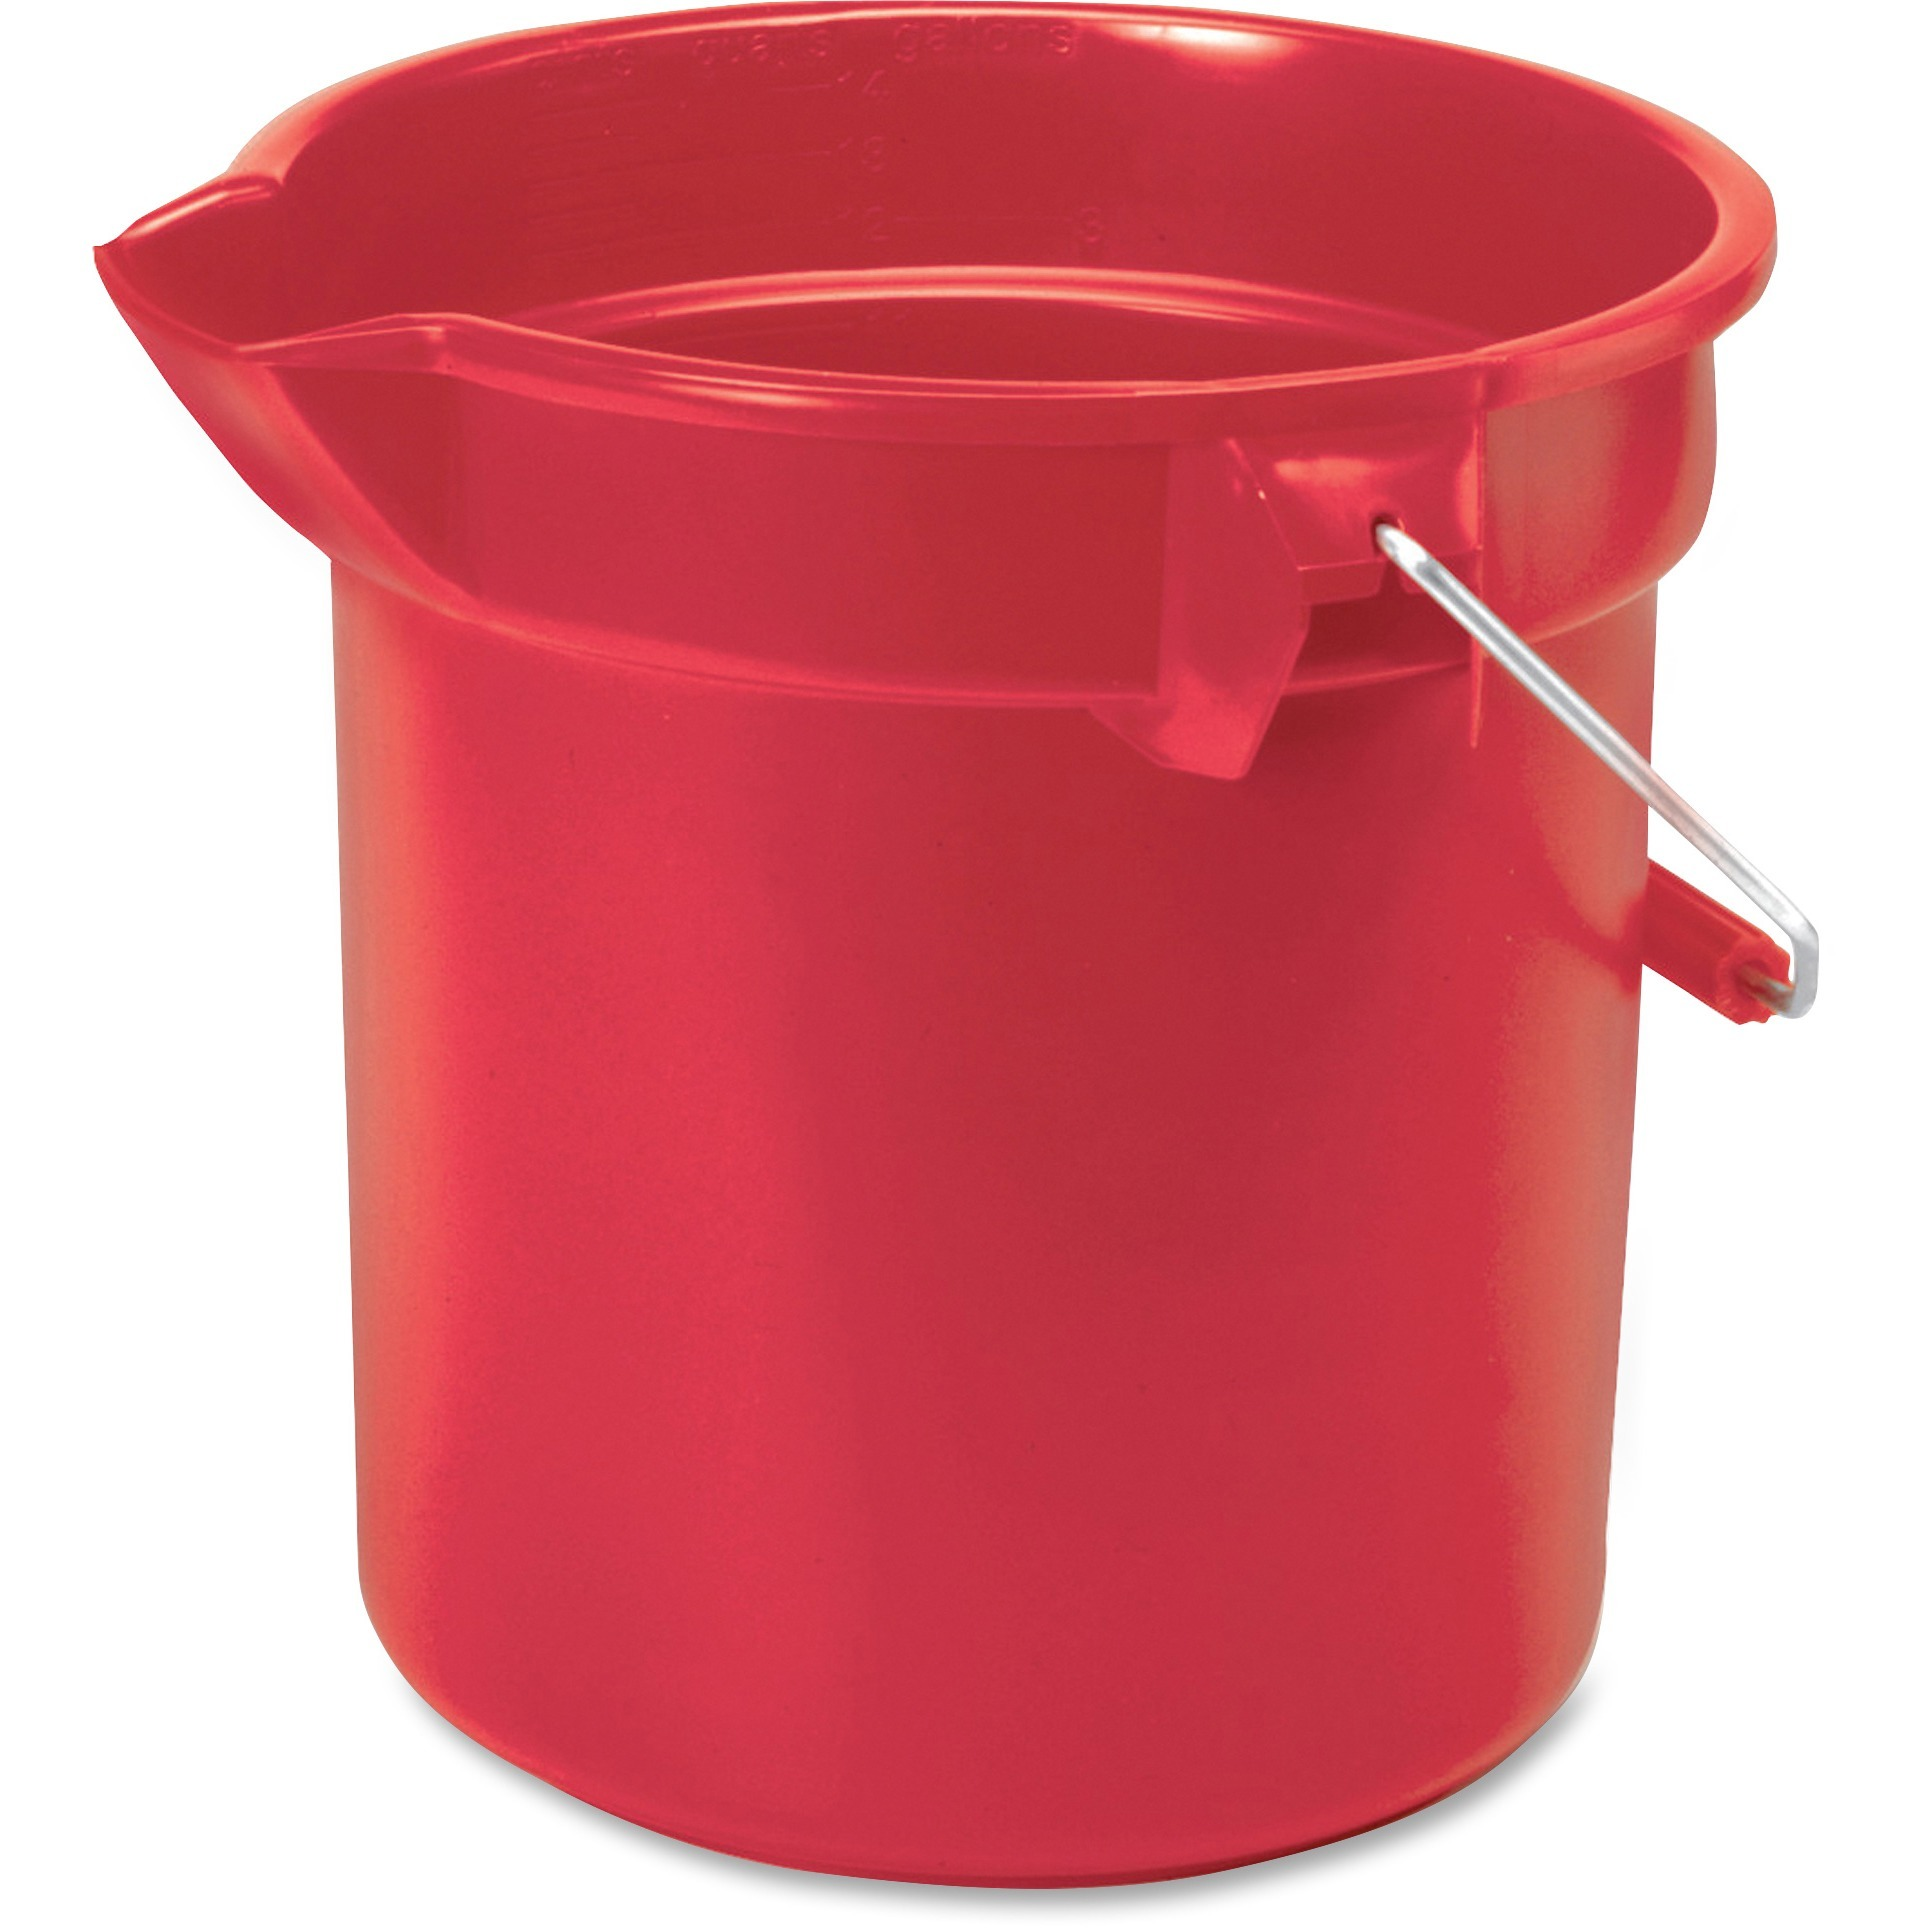 Rubbermaid Commercial, RCP261400RD, Brute 14-quart Round Bucket, 1 Each, Chrome,Nickel,Red